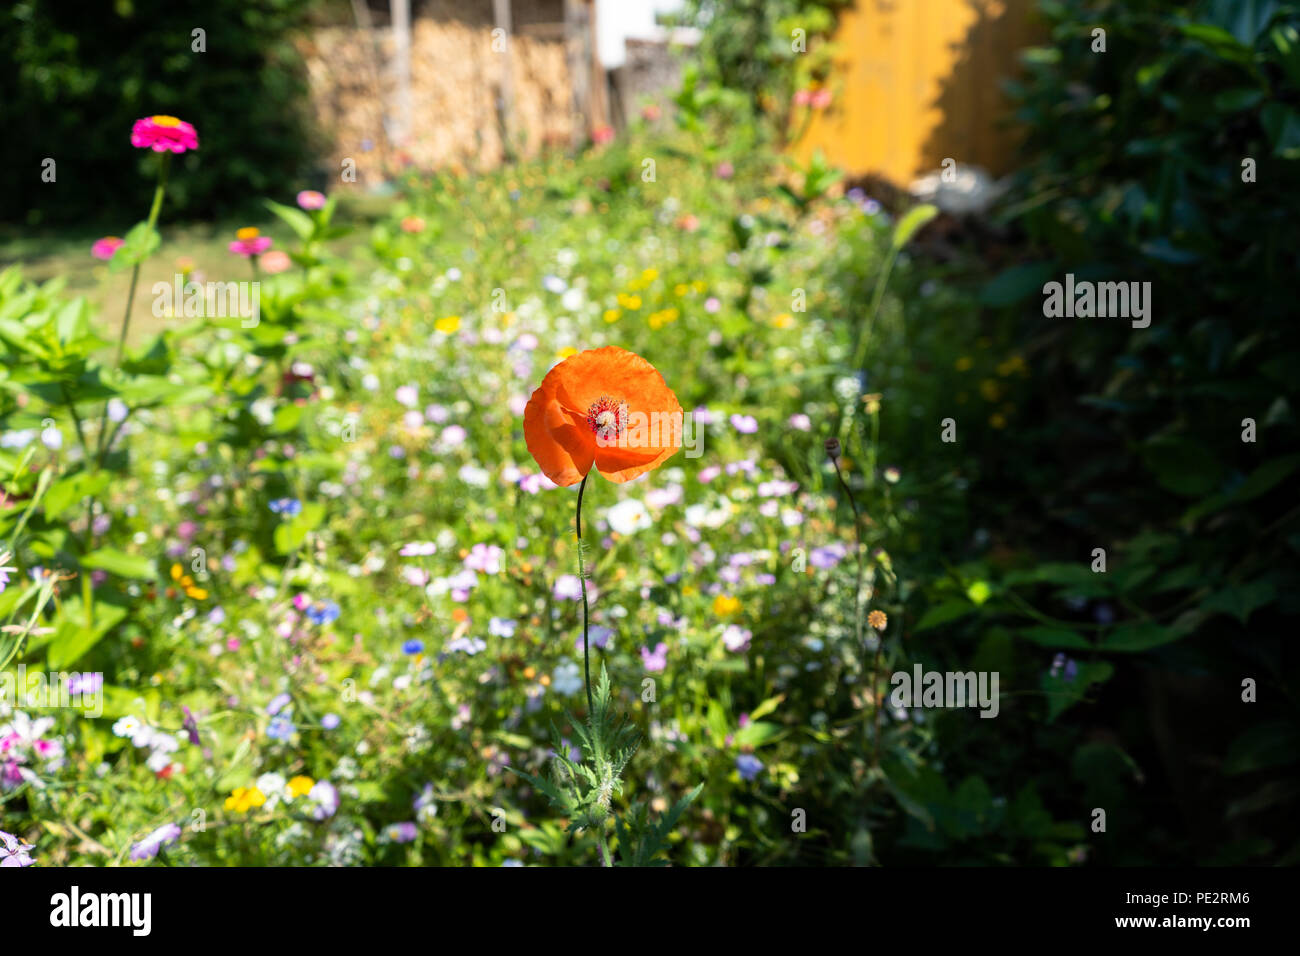 Many different beautiful flowers blossoming stock photos many beautiful flower meadow with a lot of different flowers and blossoms stock image izmirmasajfo